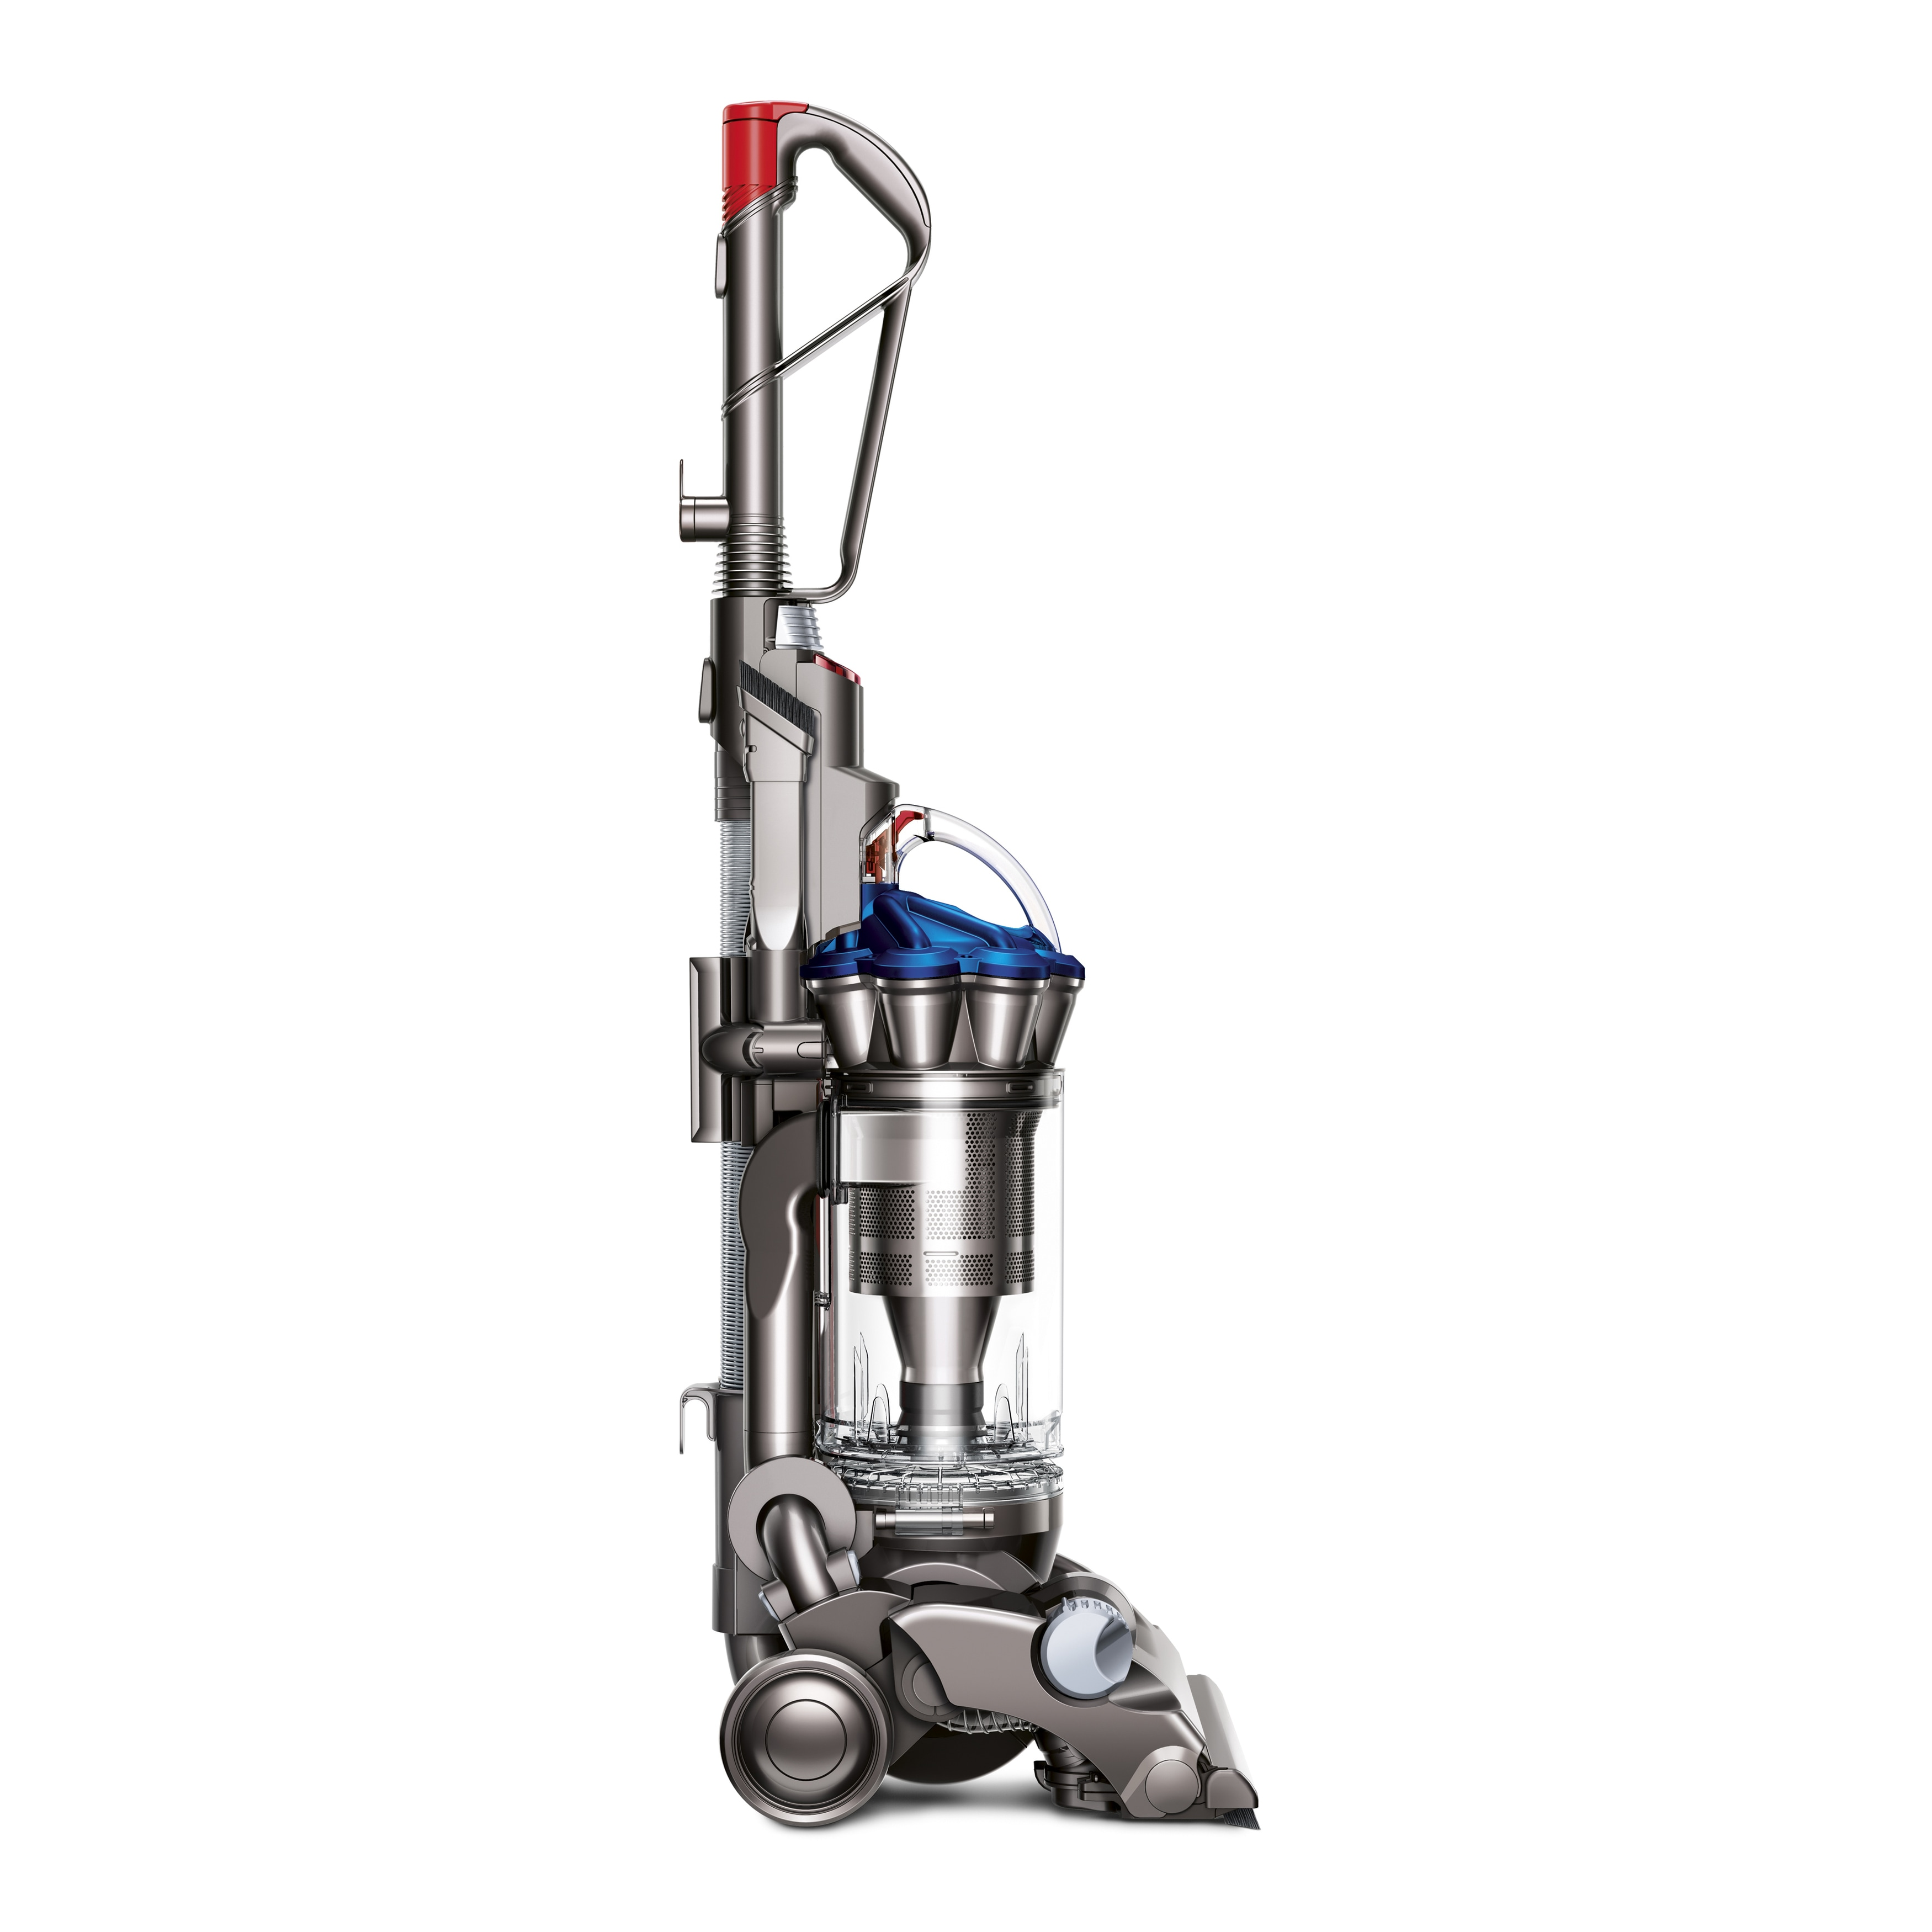 maid cleaners vacuum at ball lowes care com shop web pl speedy brush floor dyson multi vacuums fuller upright appliances